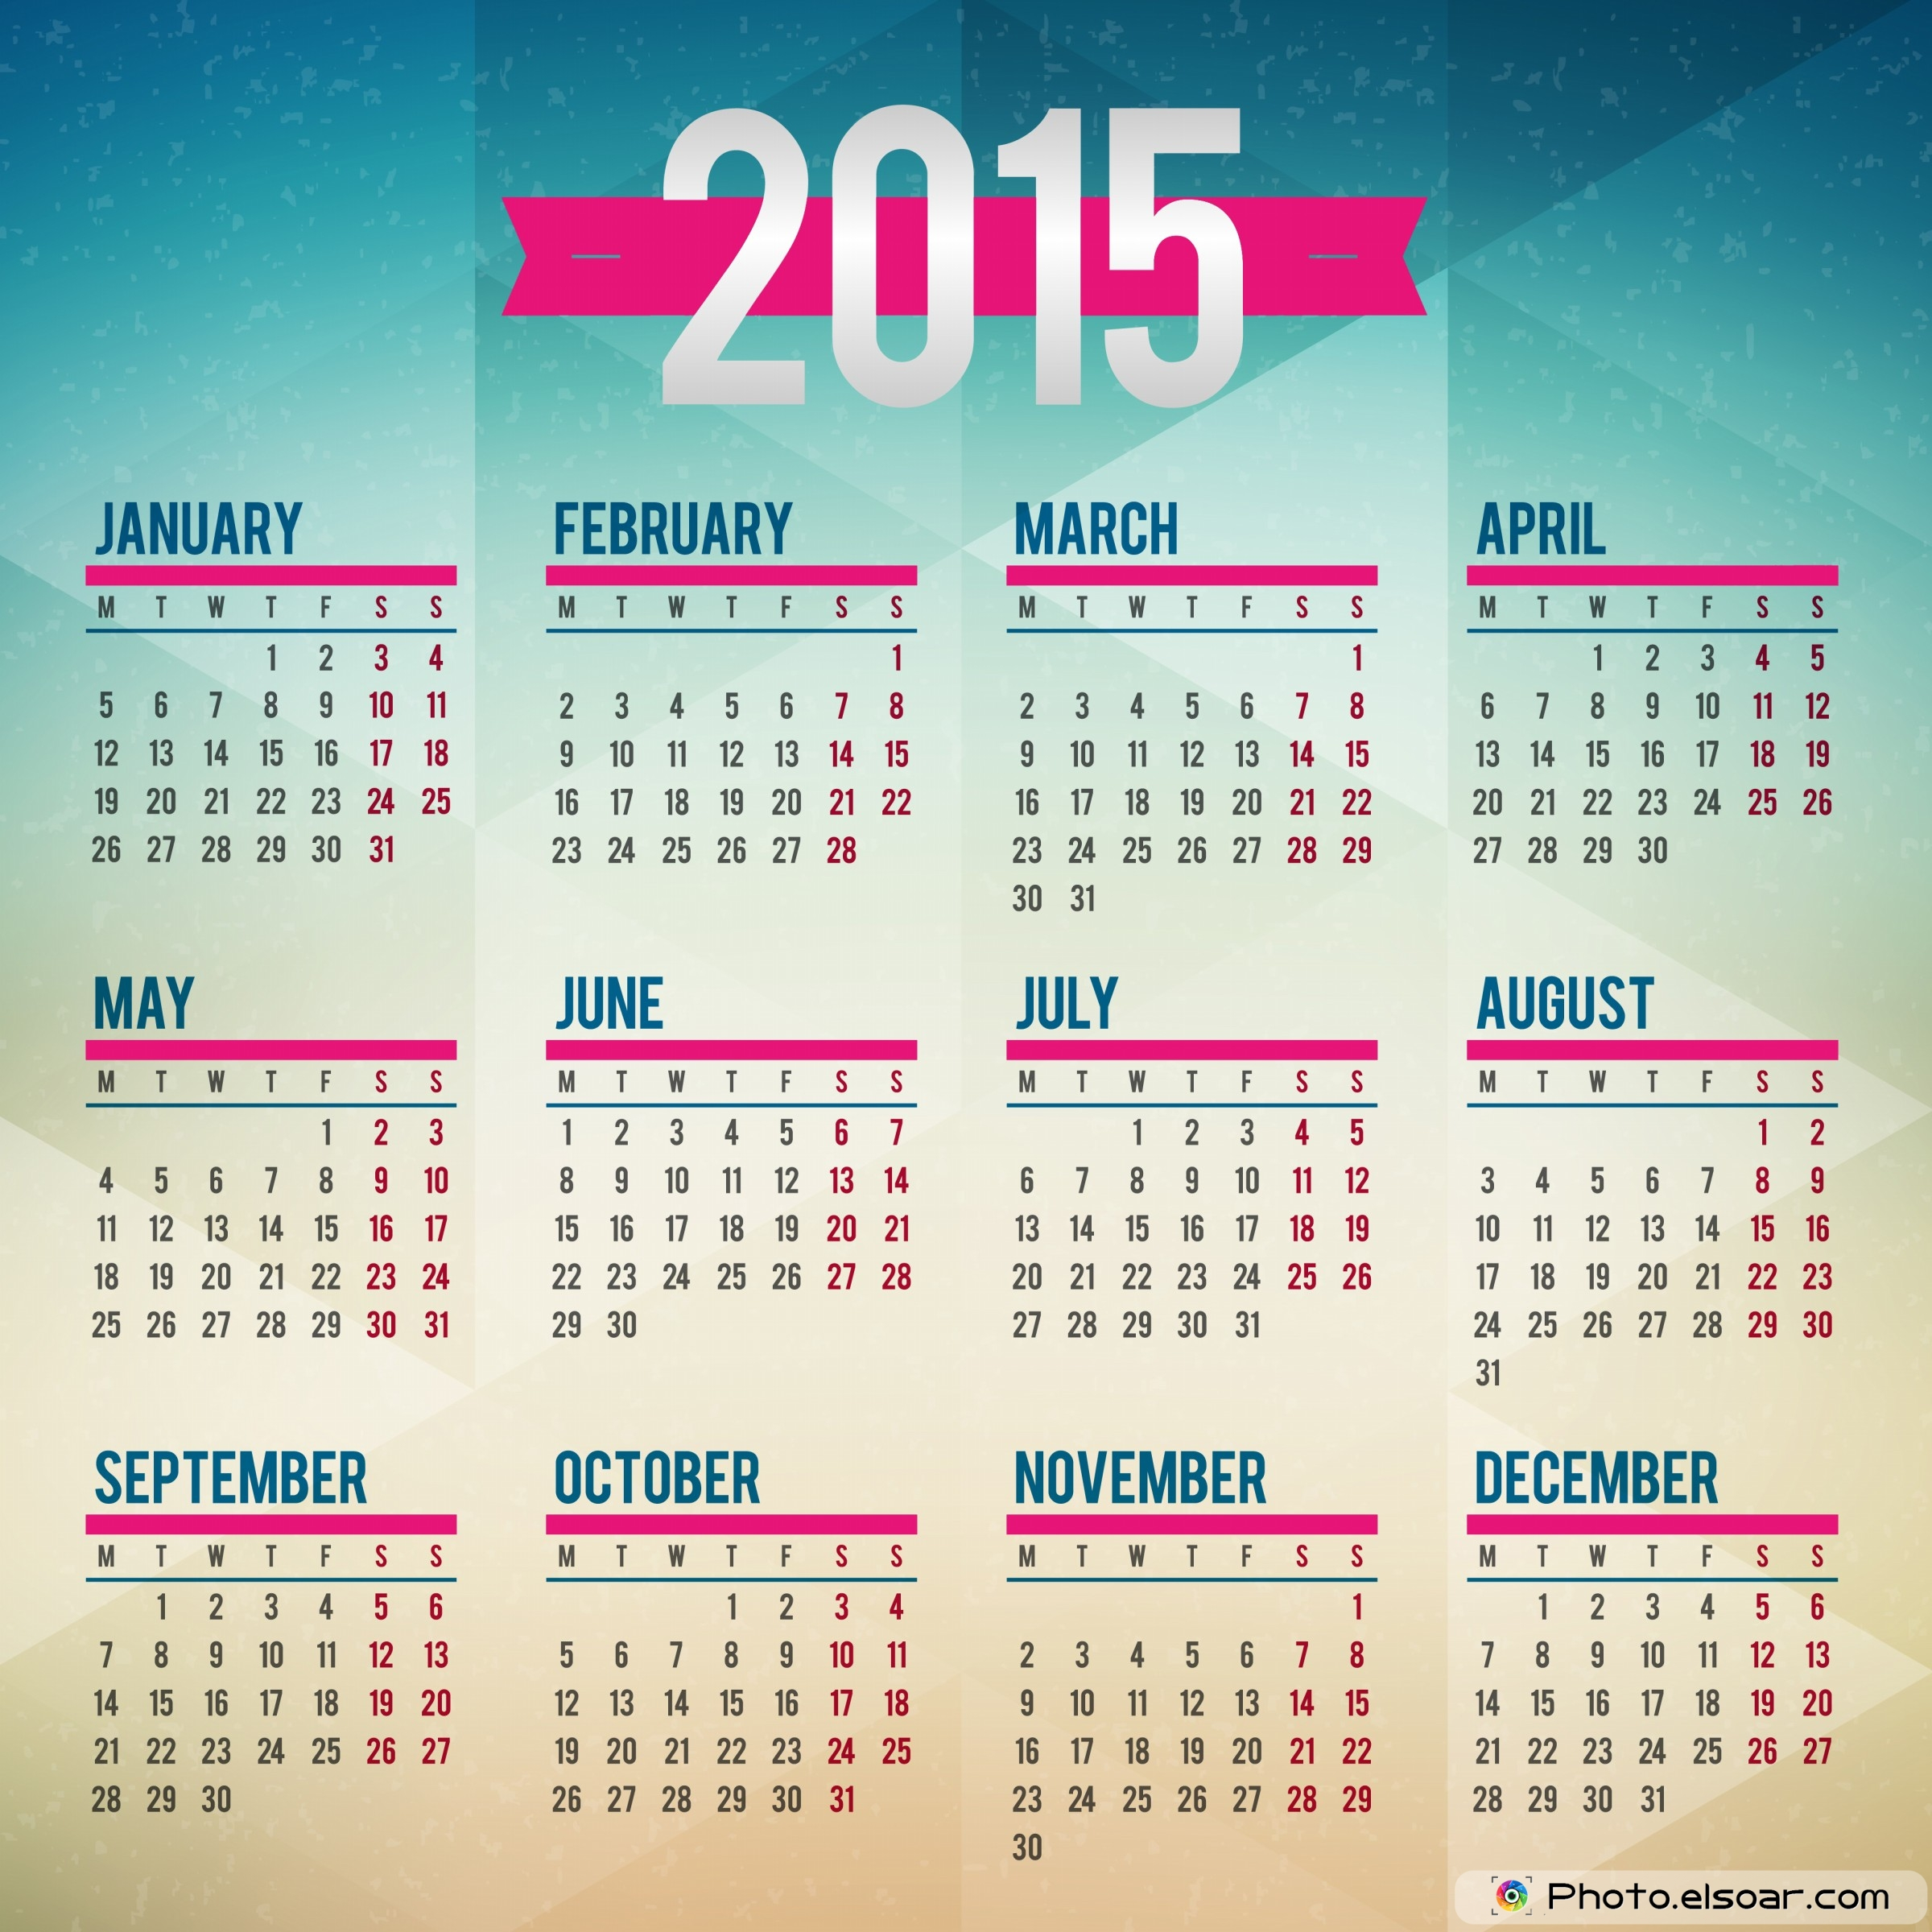 Calendar Design Pictures : Printable monthly calendar designs images